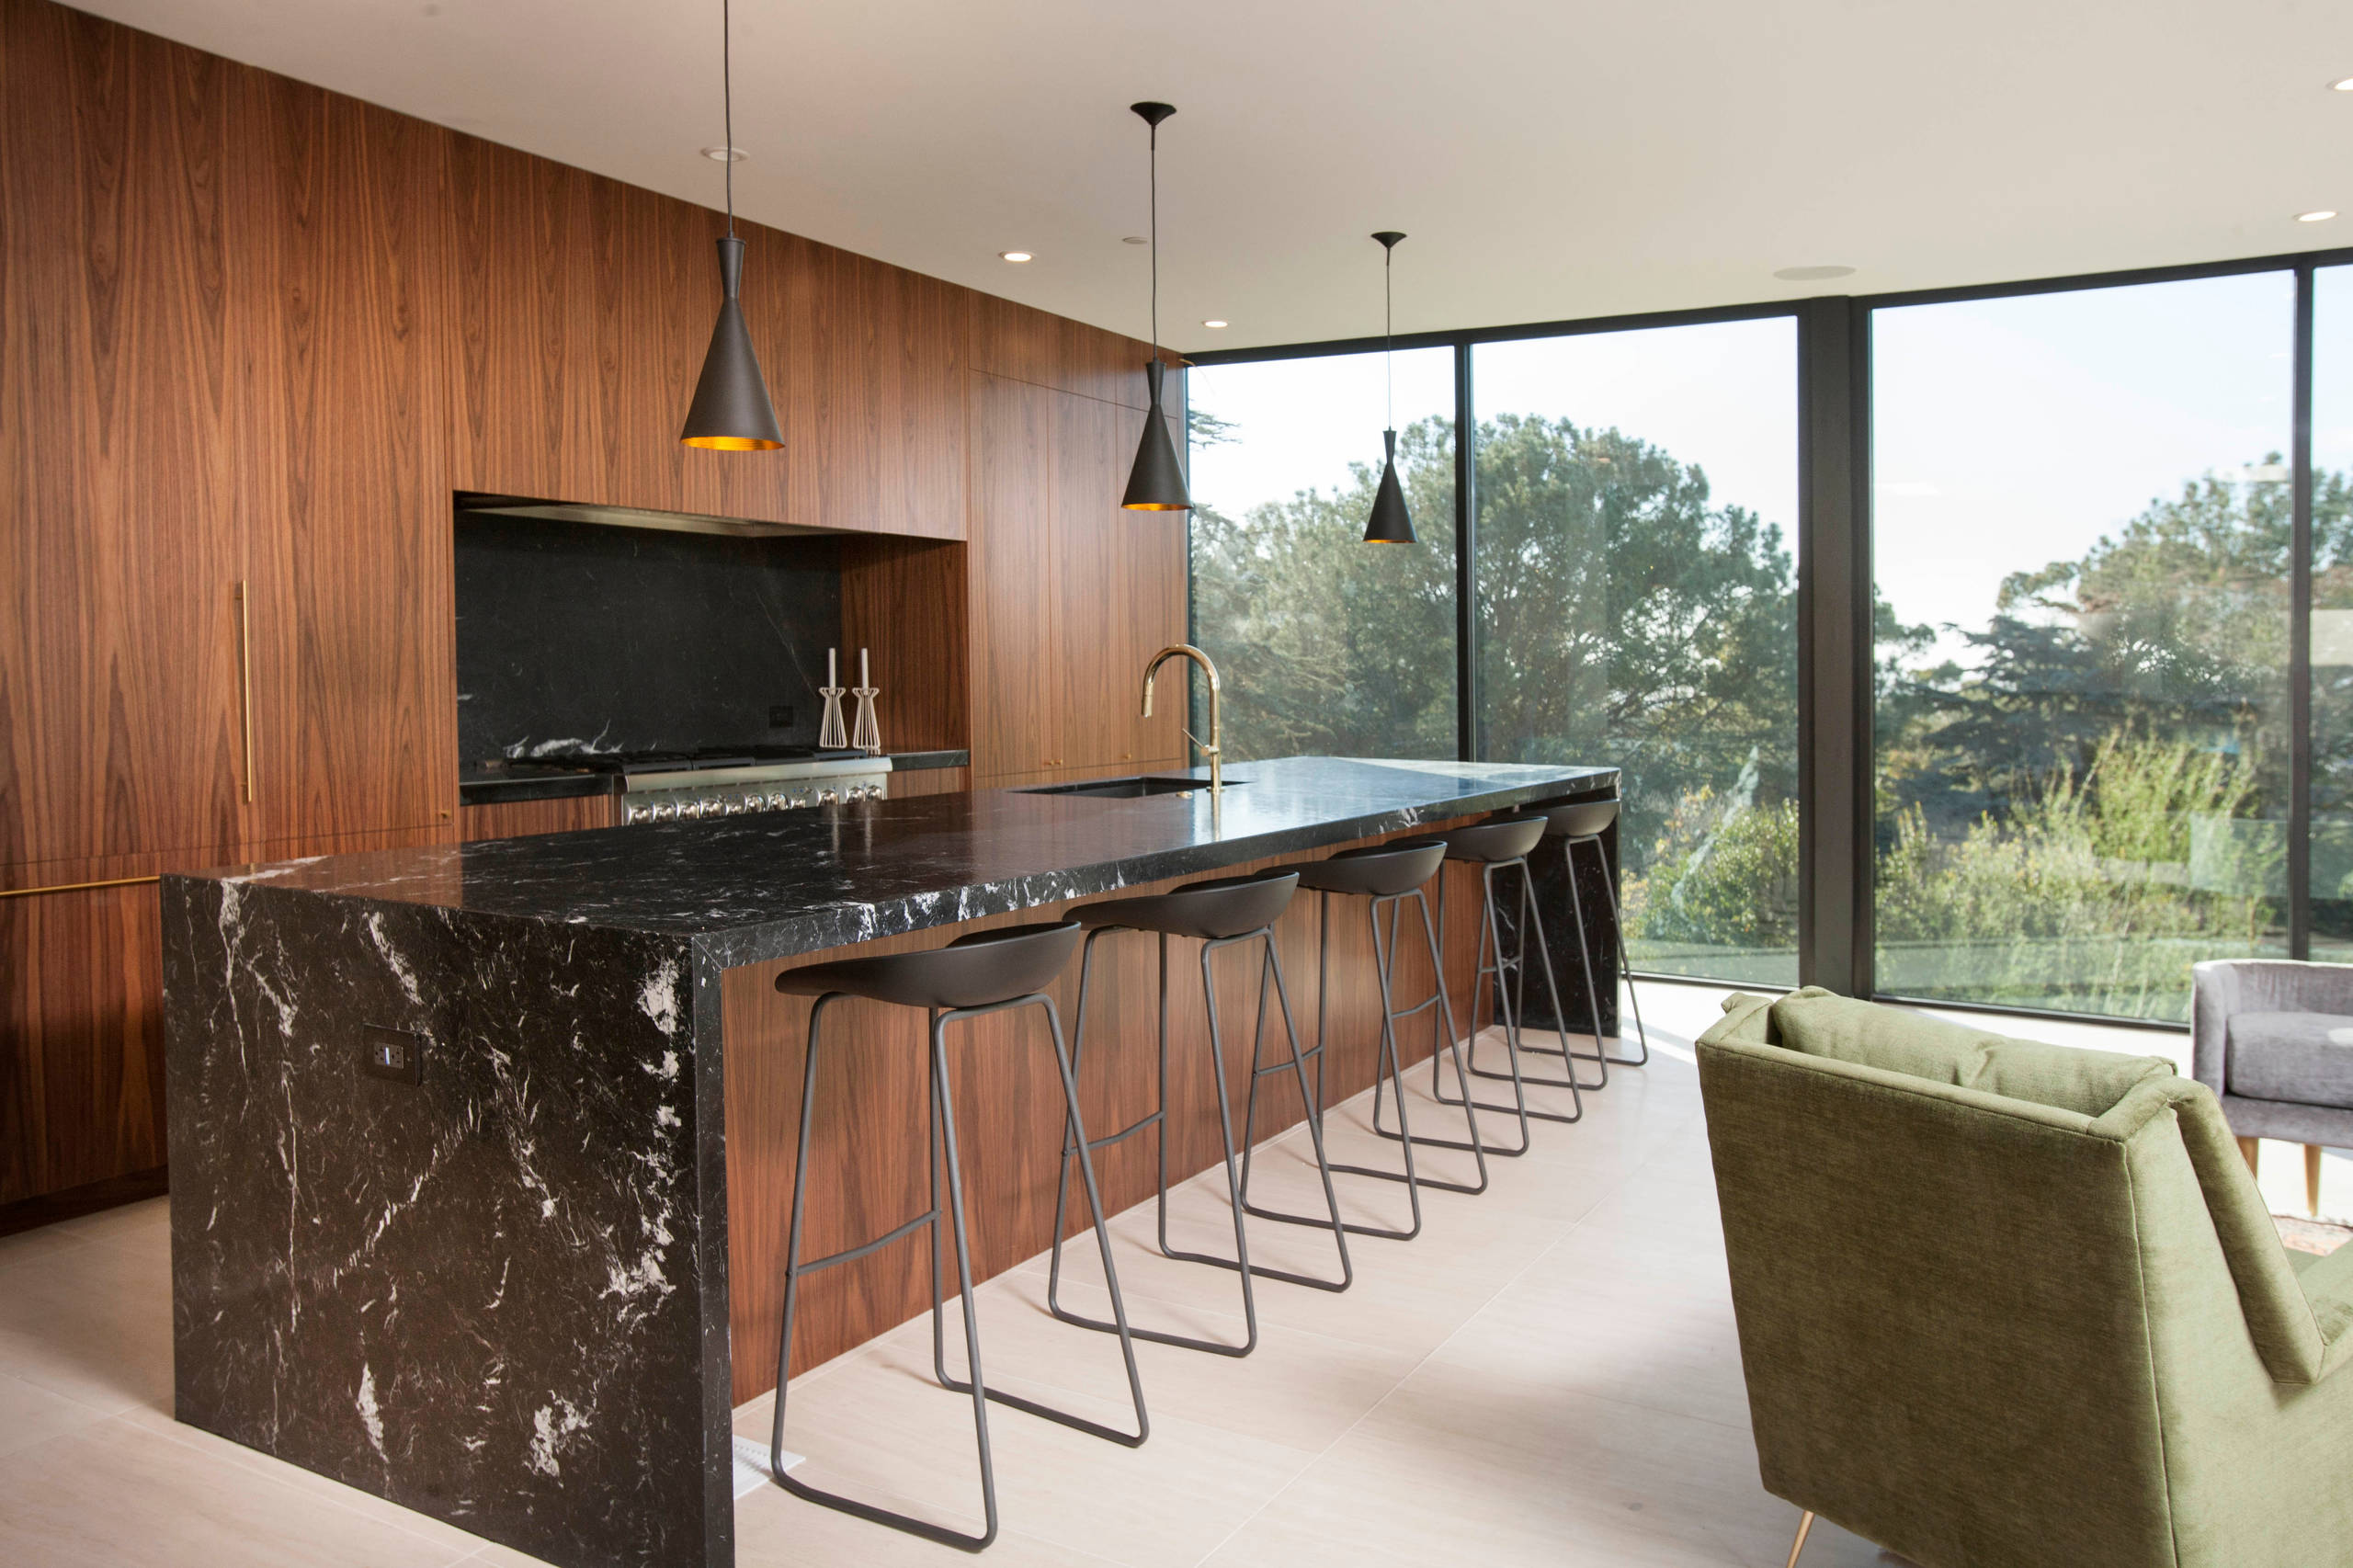 75 Beautiful Kitchen With Marble Backsplash And Black Countertops Pictures Ideas December 2020 Houzz